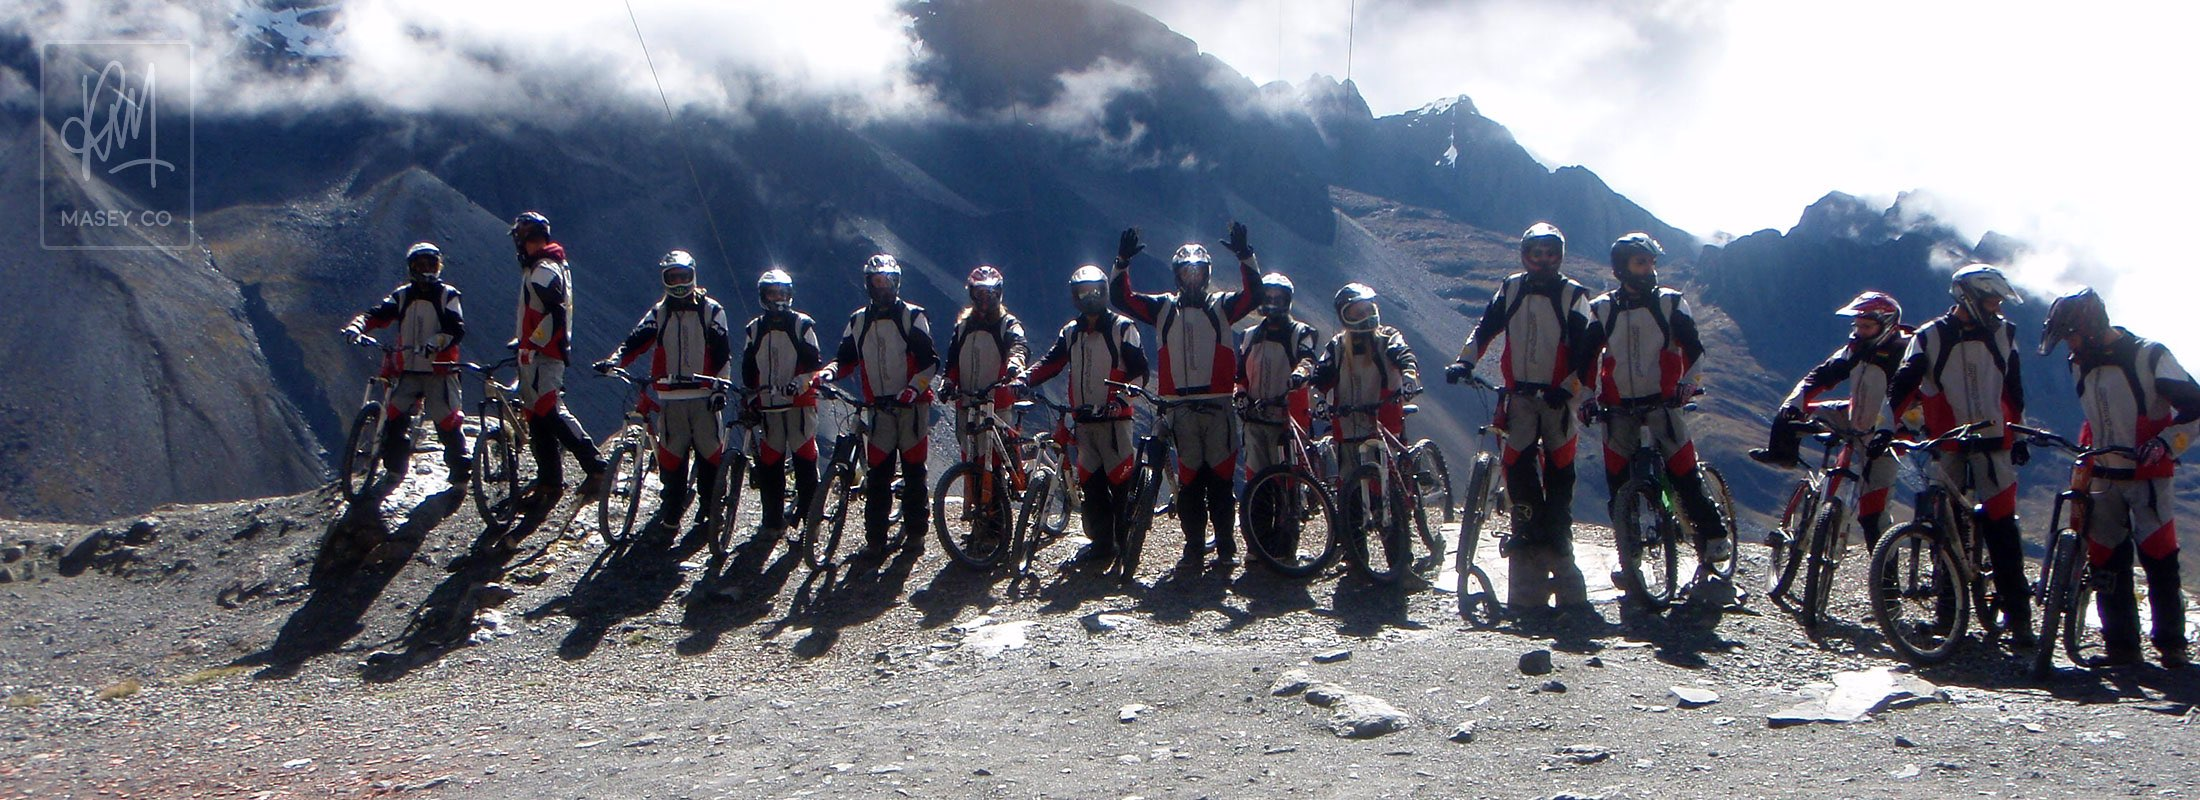 Suiting up for mountain biking down Bolivia's famed Death Road